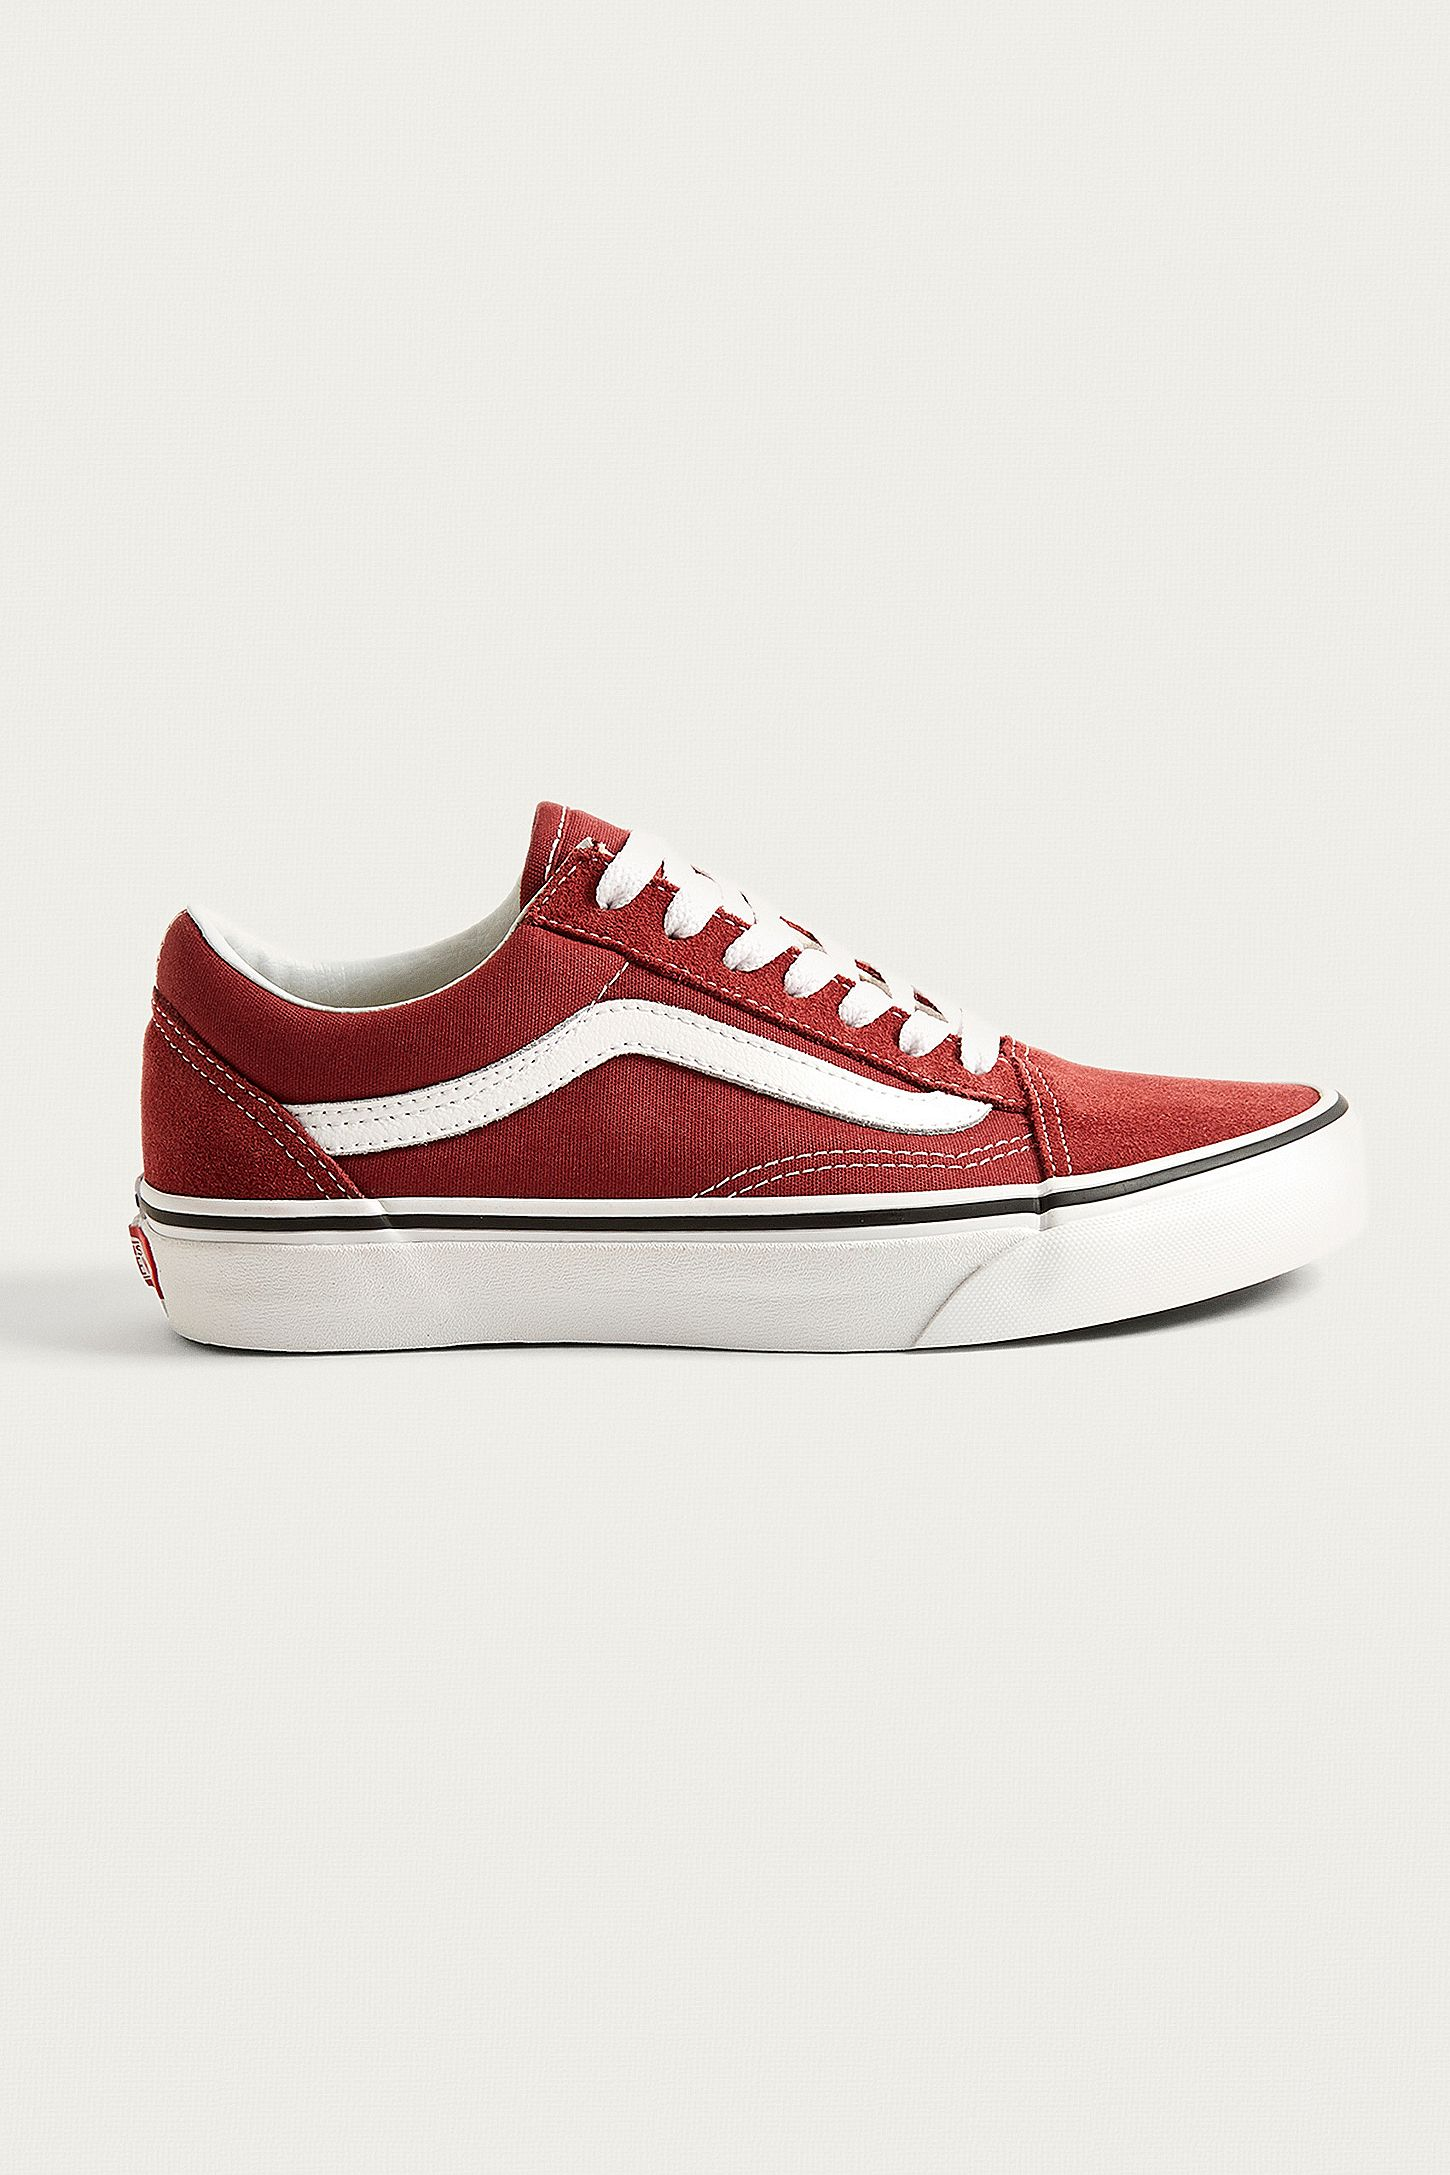 Vans Old Skool Burgundy Trainers  f545fd6bd